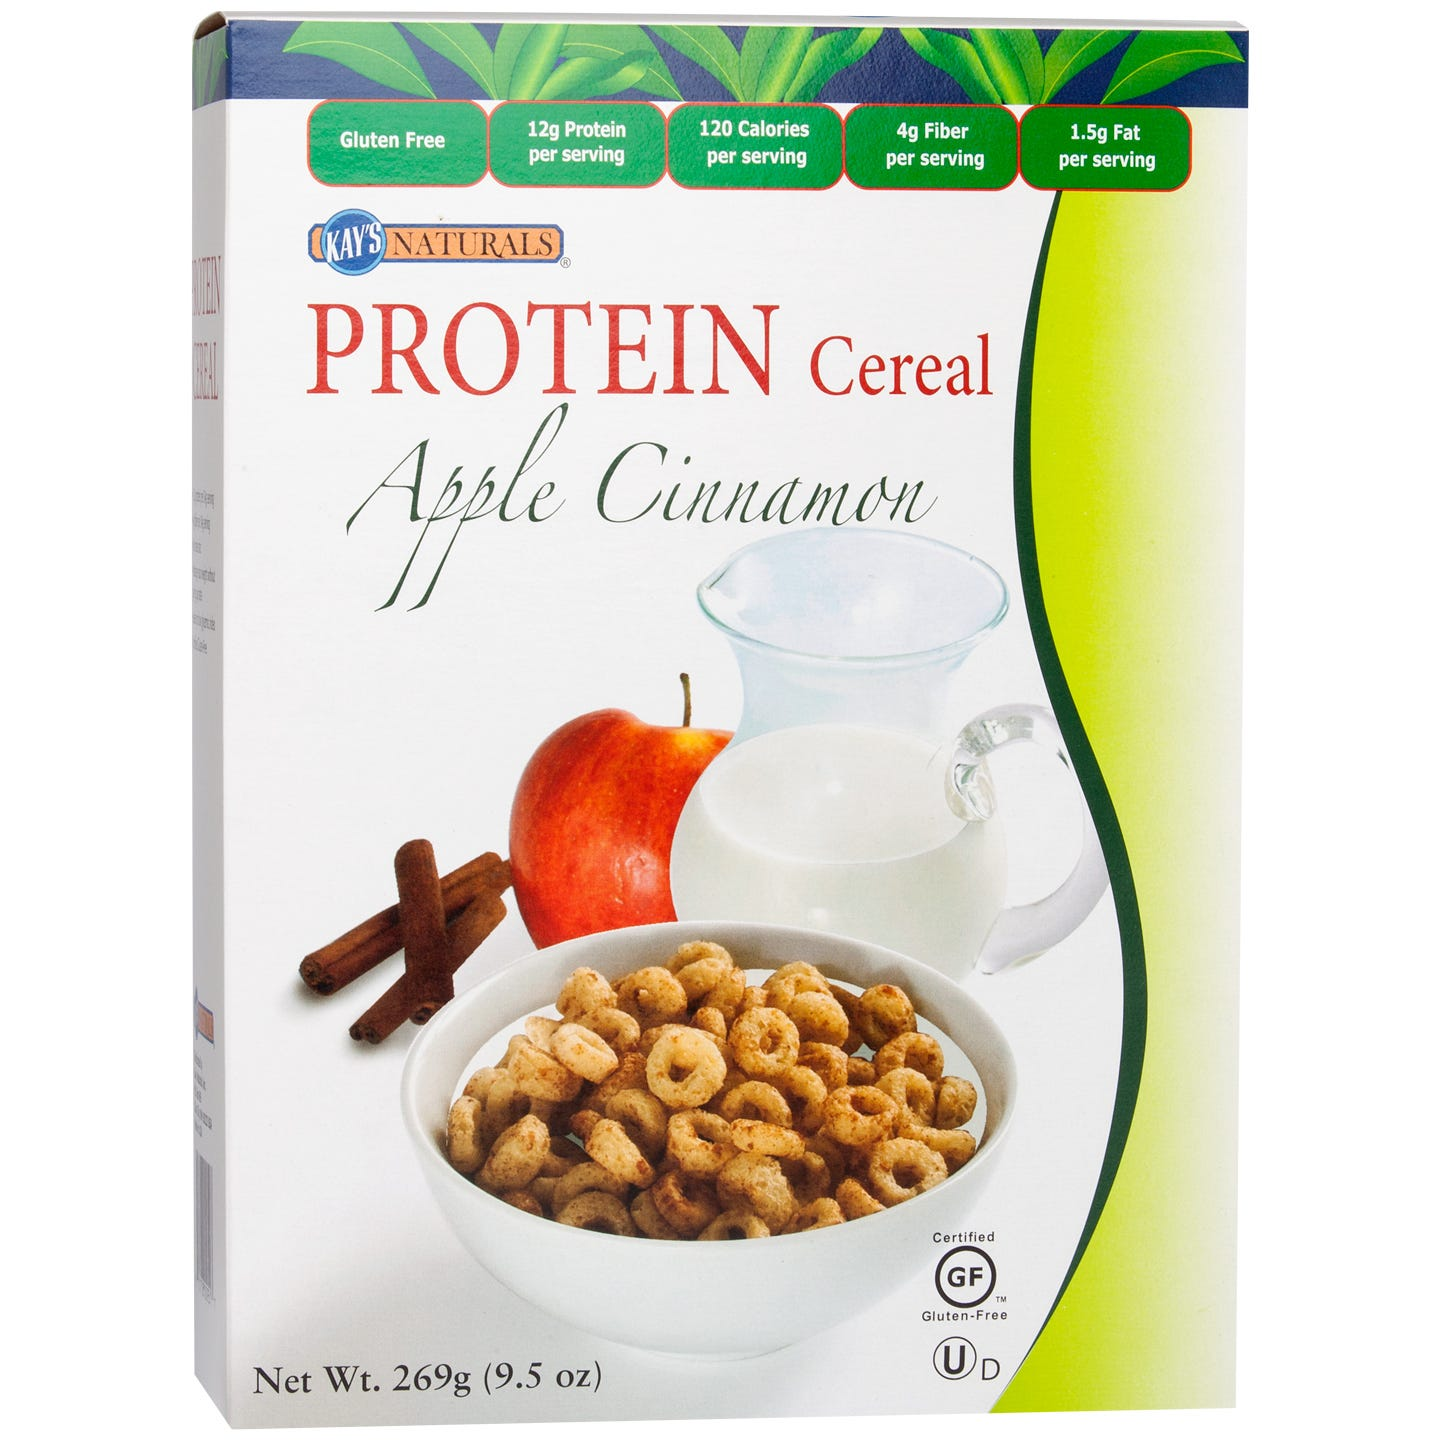 Protein Cereal Apple Cinnamon 9.5 oz, Kay's Naturals - Rapid Diet Weight Loss Products Shop